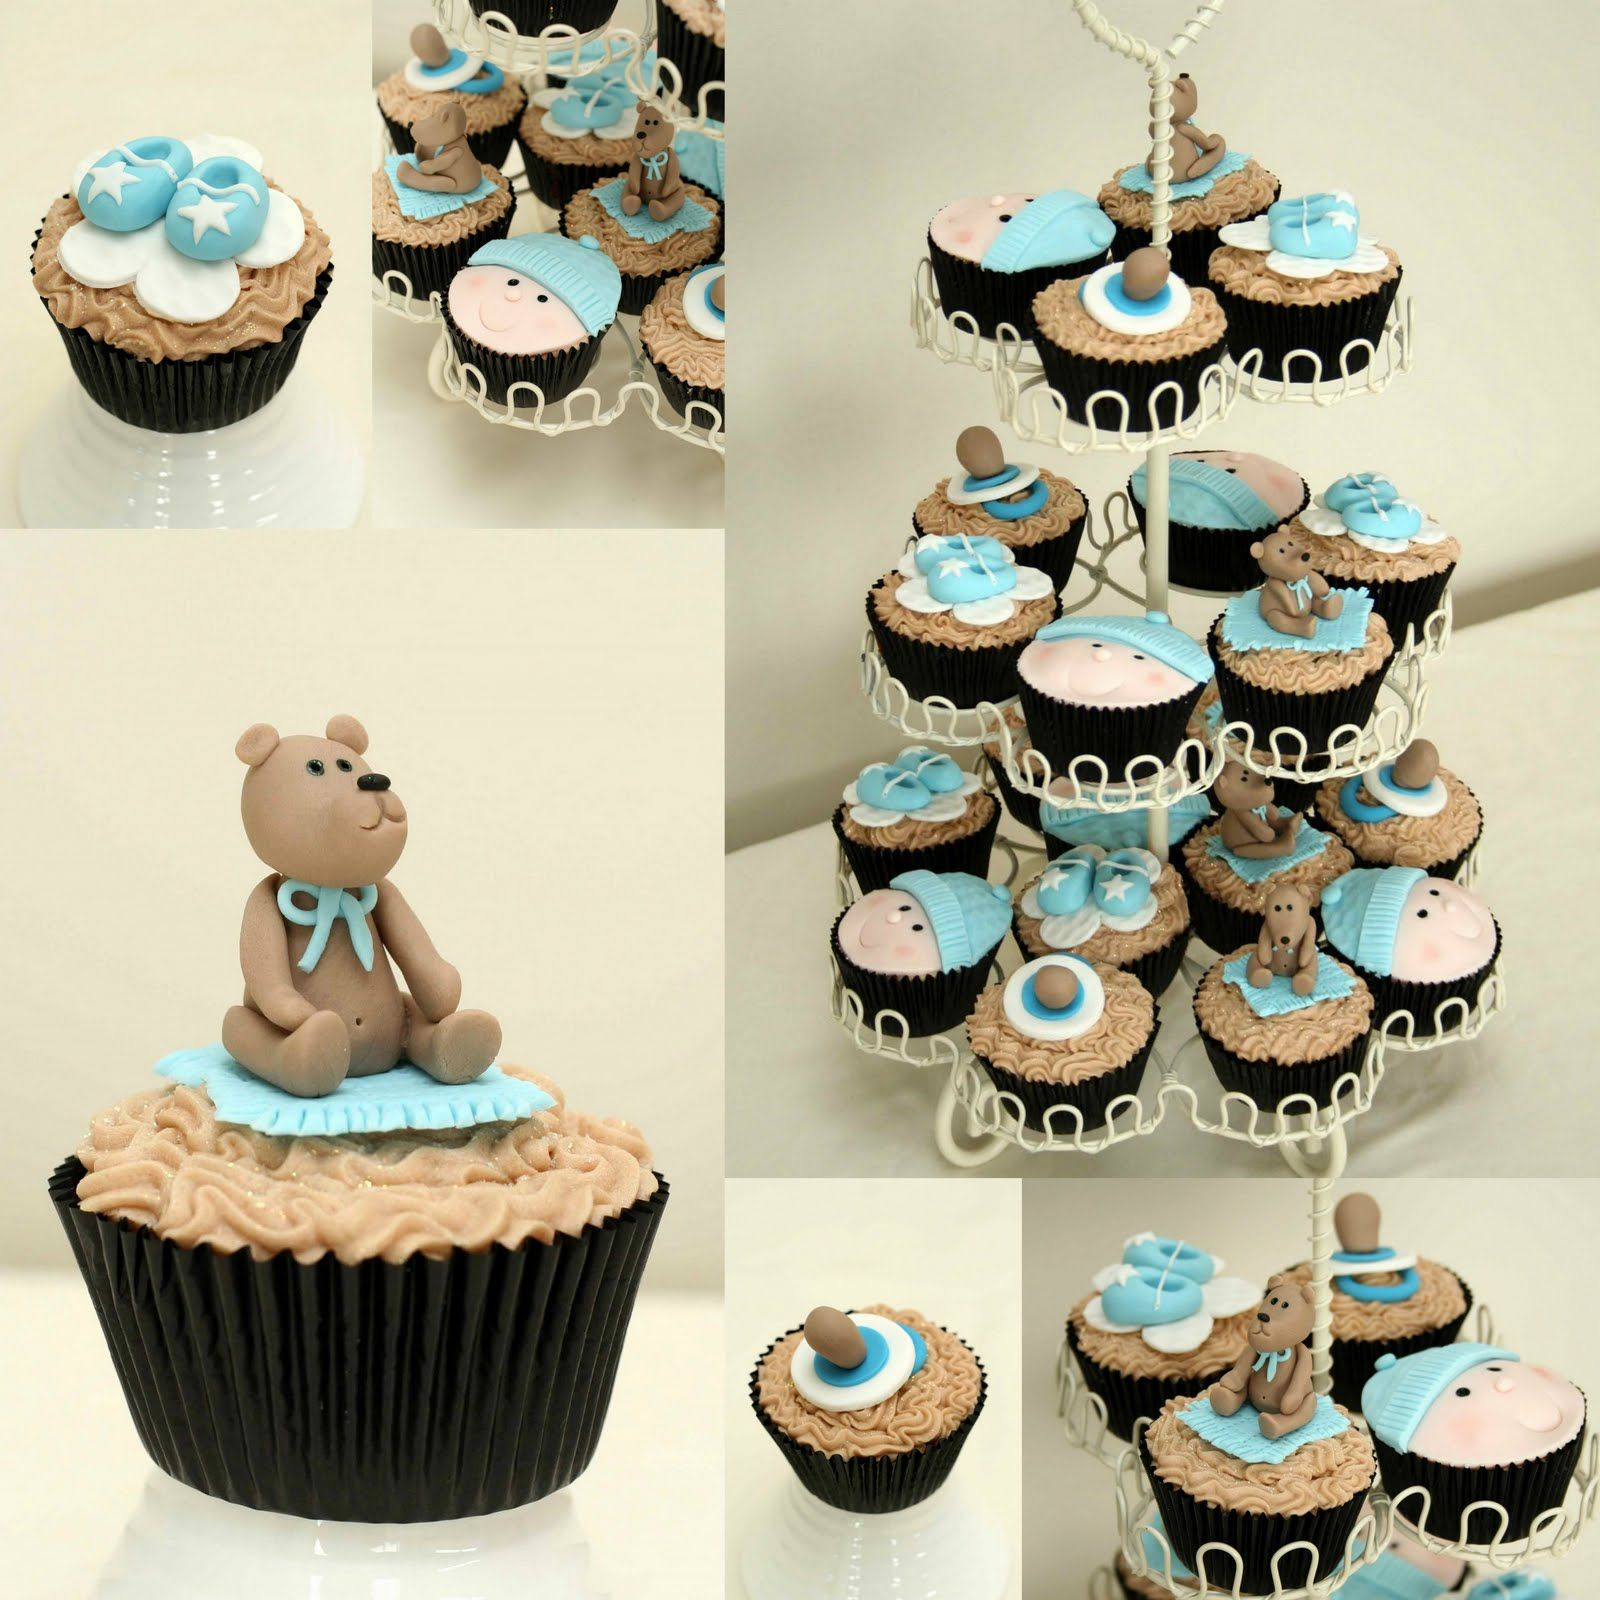 Find This Pin And More On Jessieu0027s Baby Shower Ideas By Missheatherjoy.